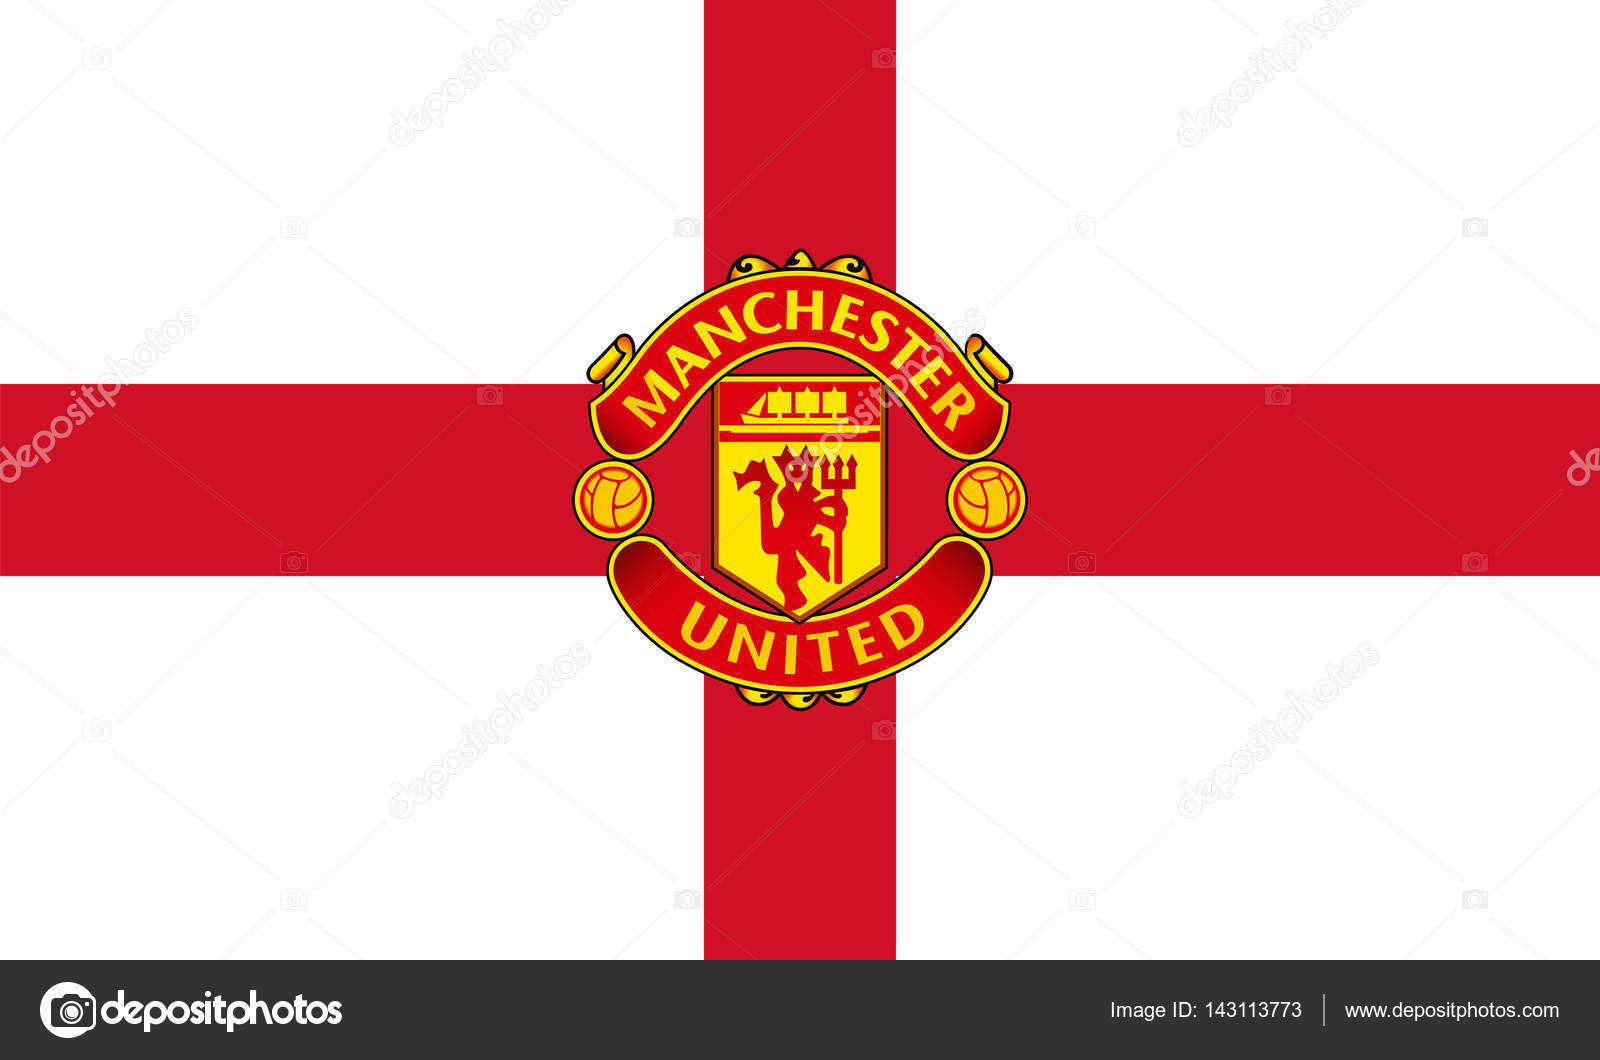 Vector illustration of manchester united stock editorial photo manchester england feb 22 2017 vector illustration of manchester united fc logo on english flag background photo by bodrumsurf voltagebd Image collections